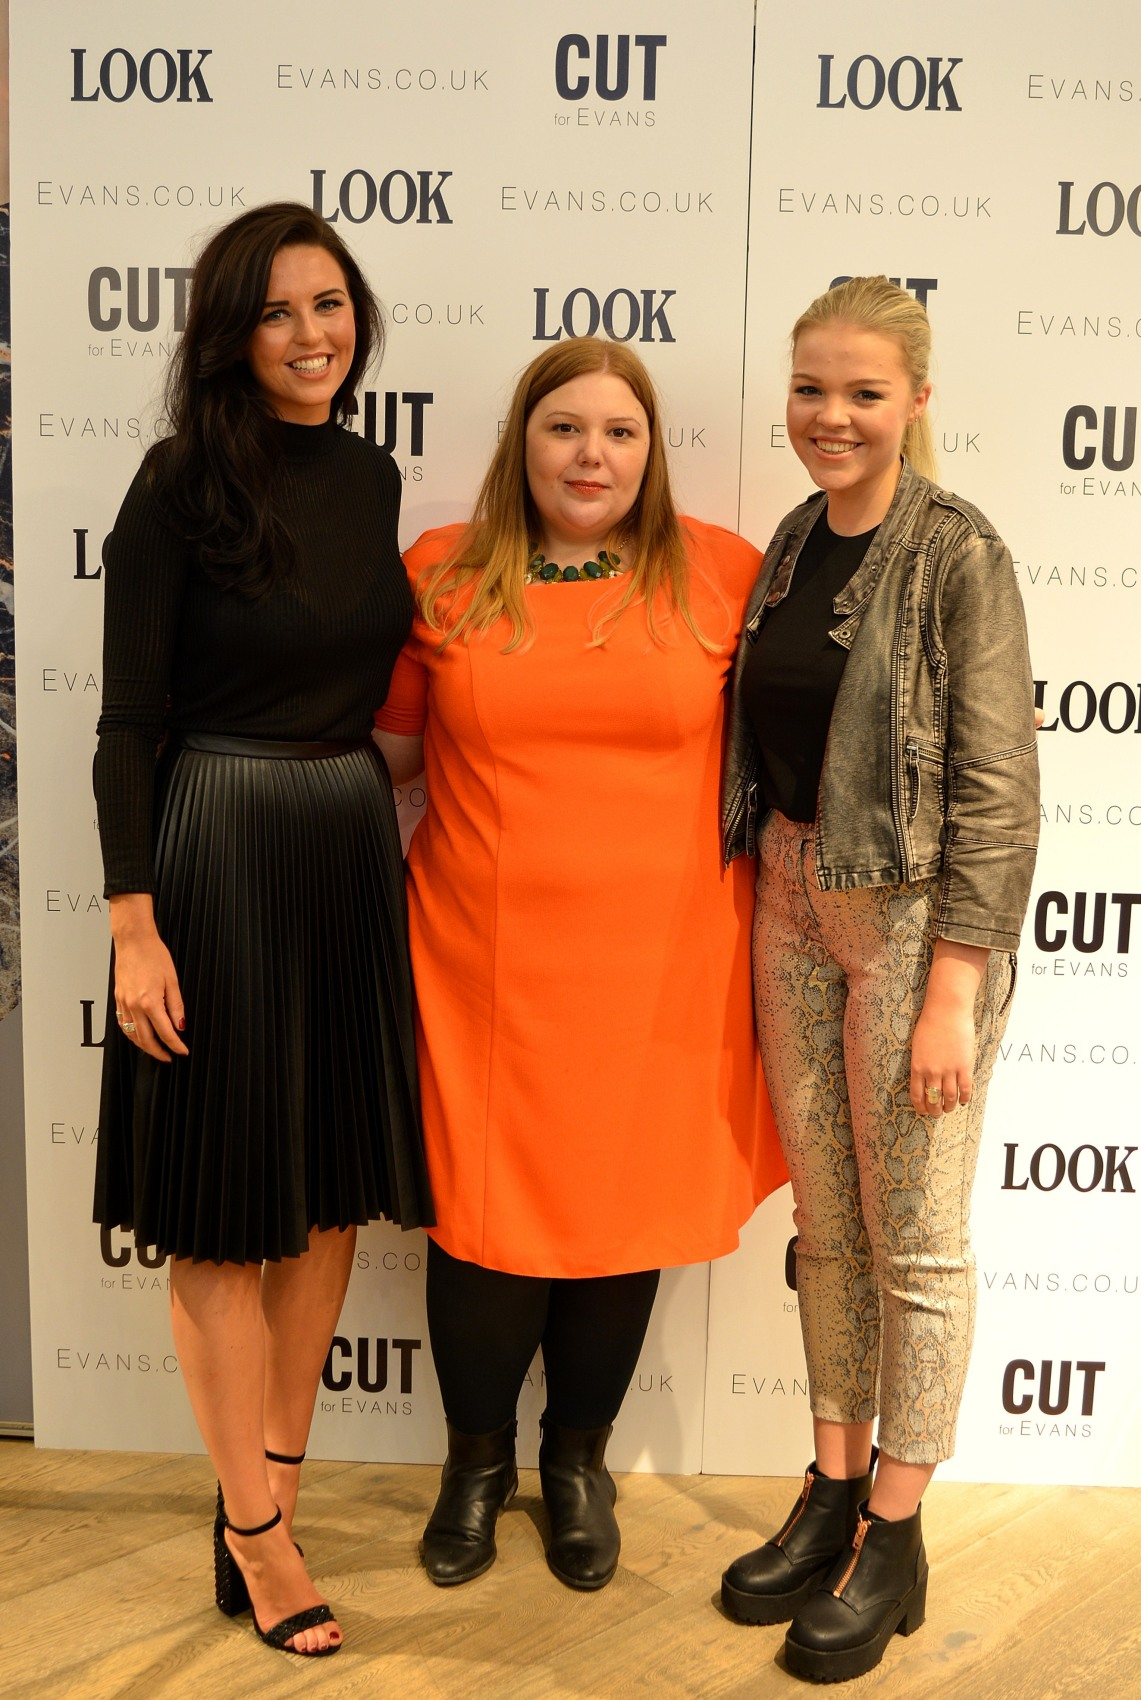 Cut For Evans Designers Eve Turley, Ellie Northway and Pretty Big Butterflies